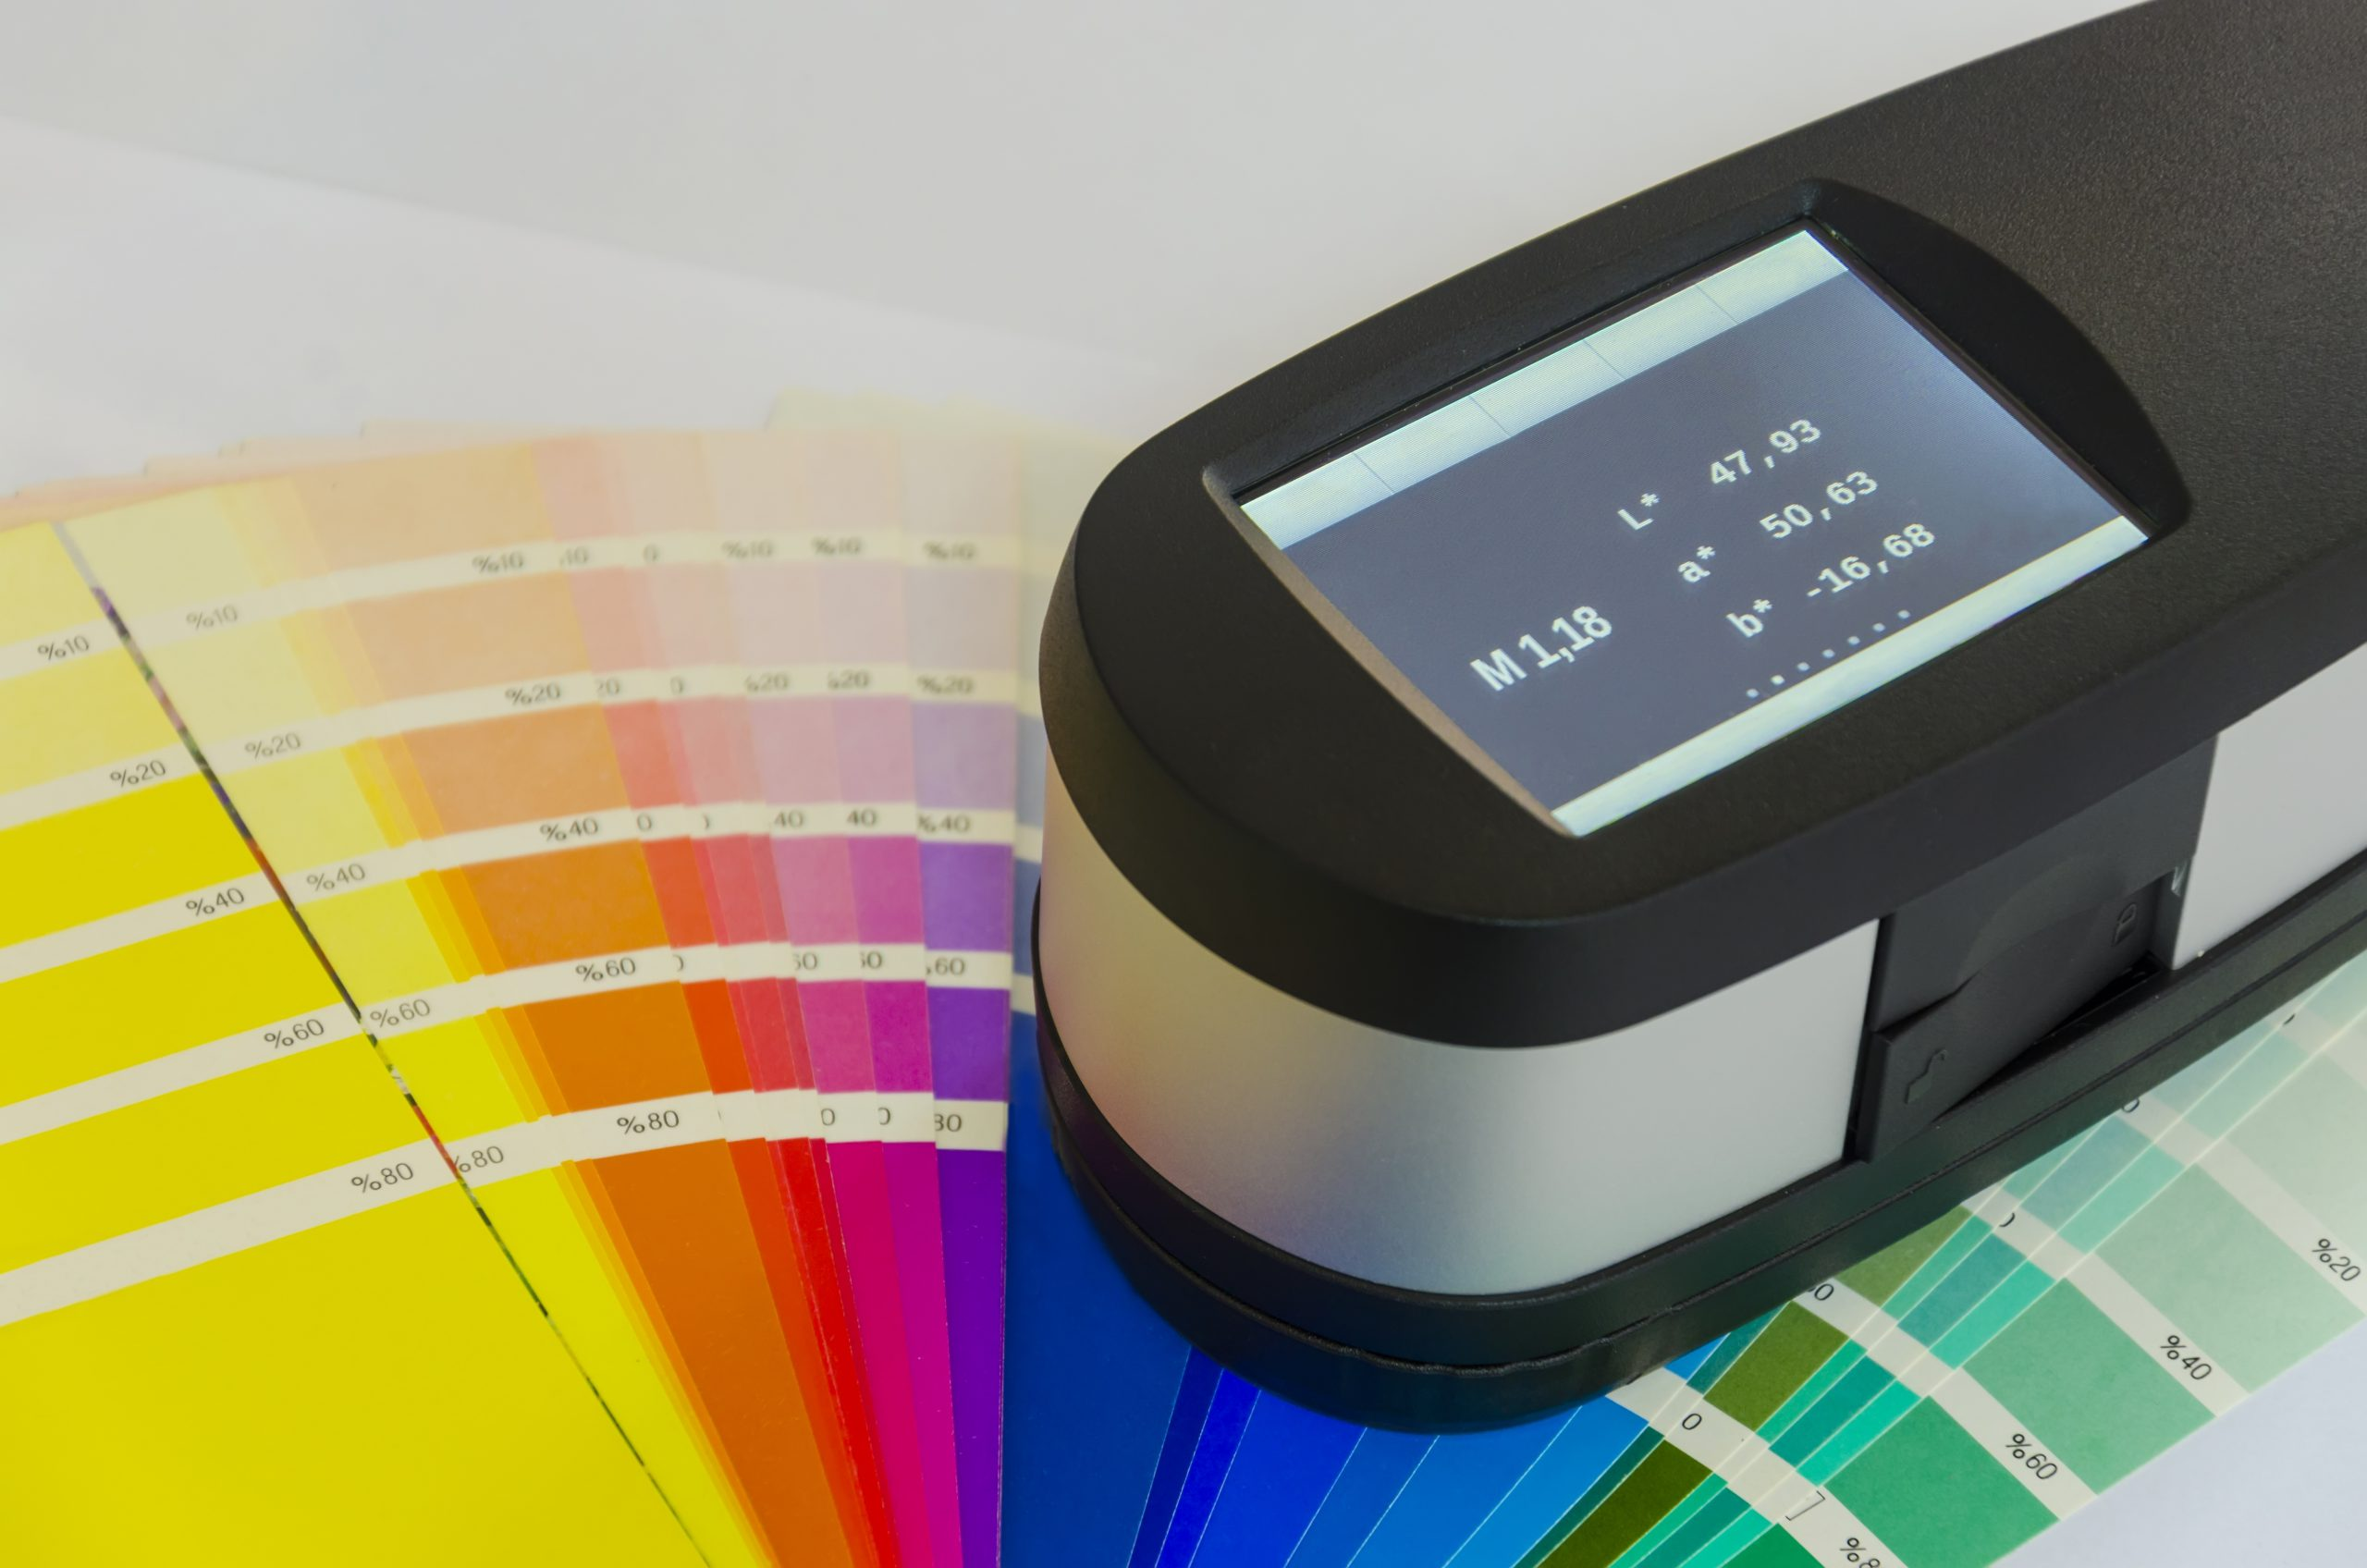 How Is Color Measured? Calculating Delta E